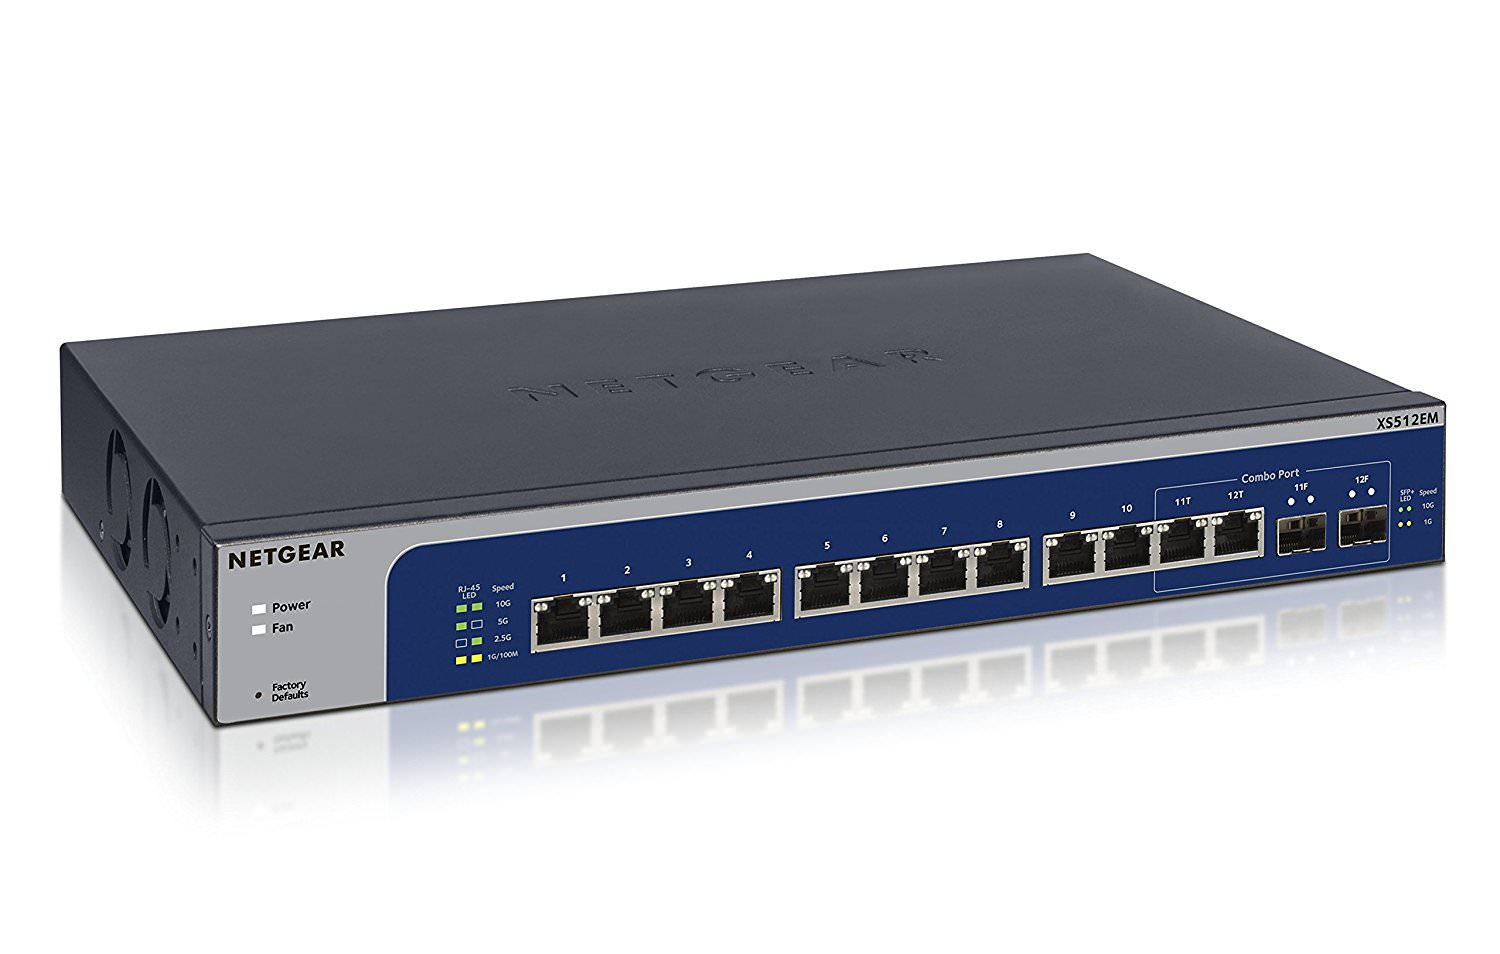 NETGEAR 12-port 10-Gigabit   Multi-Gigabit Ethernet Smart Managed Plus Switch by NETGEAR